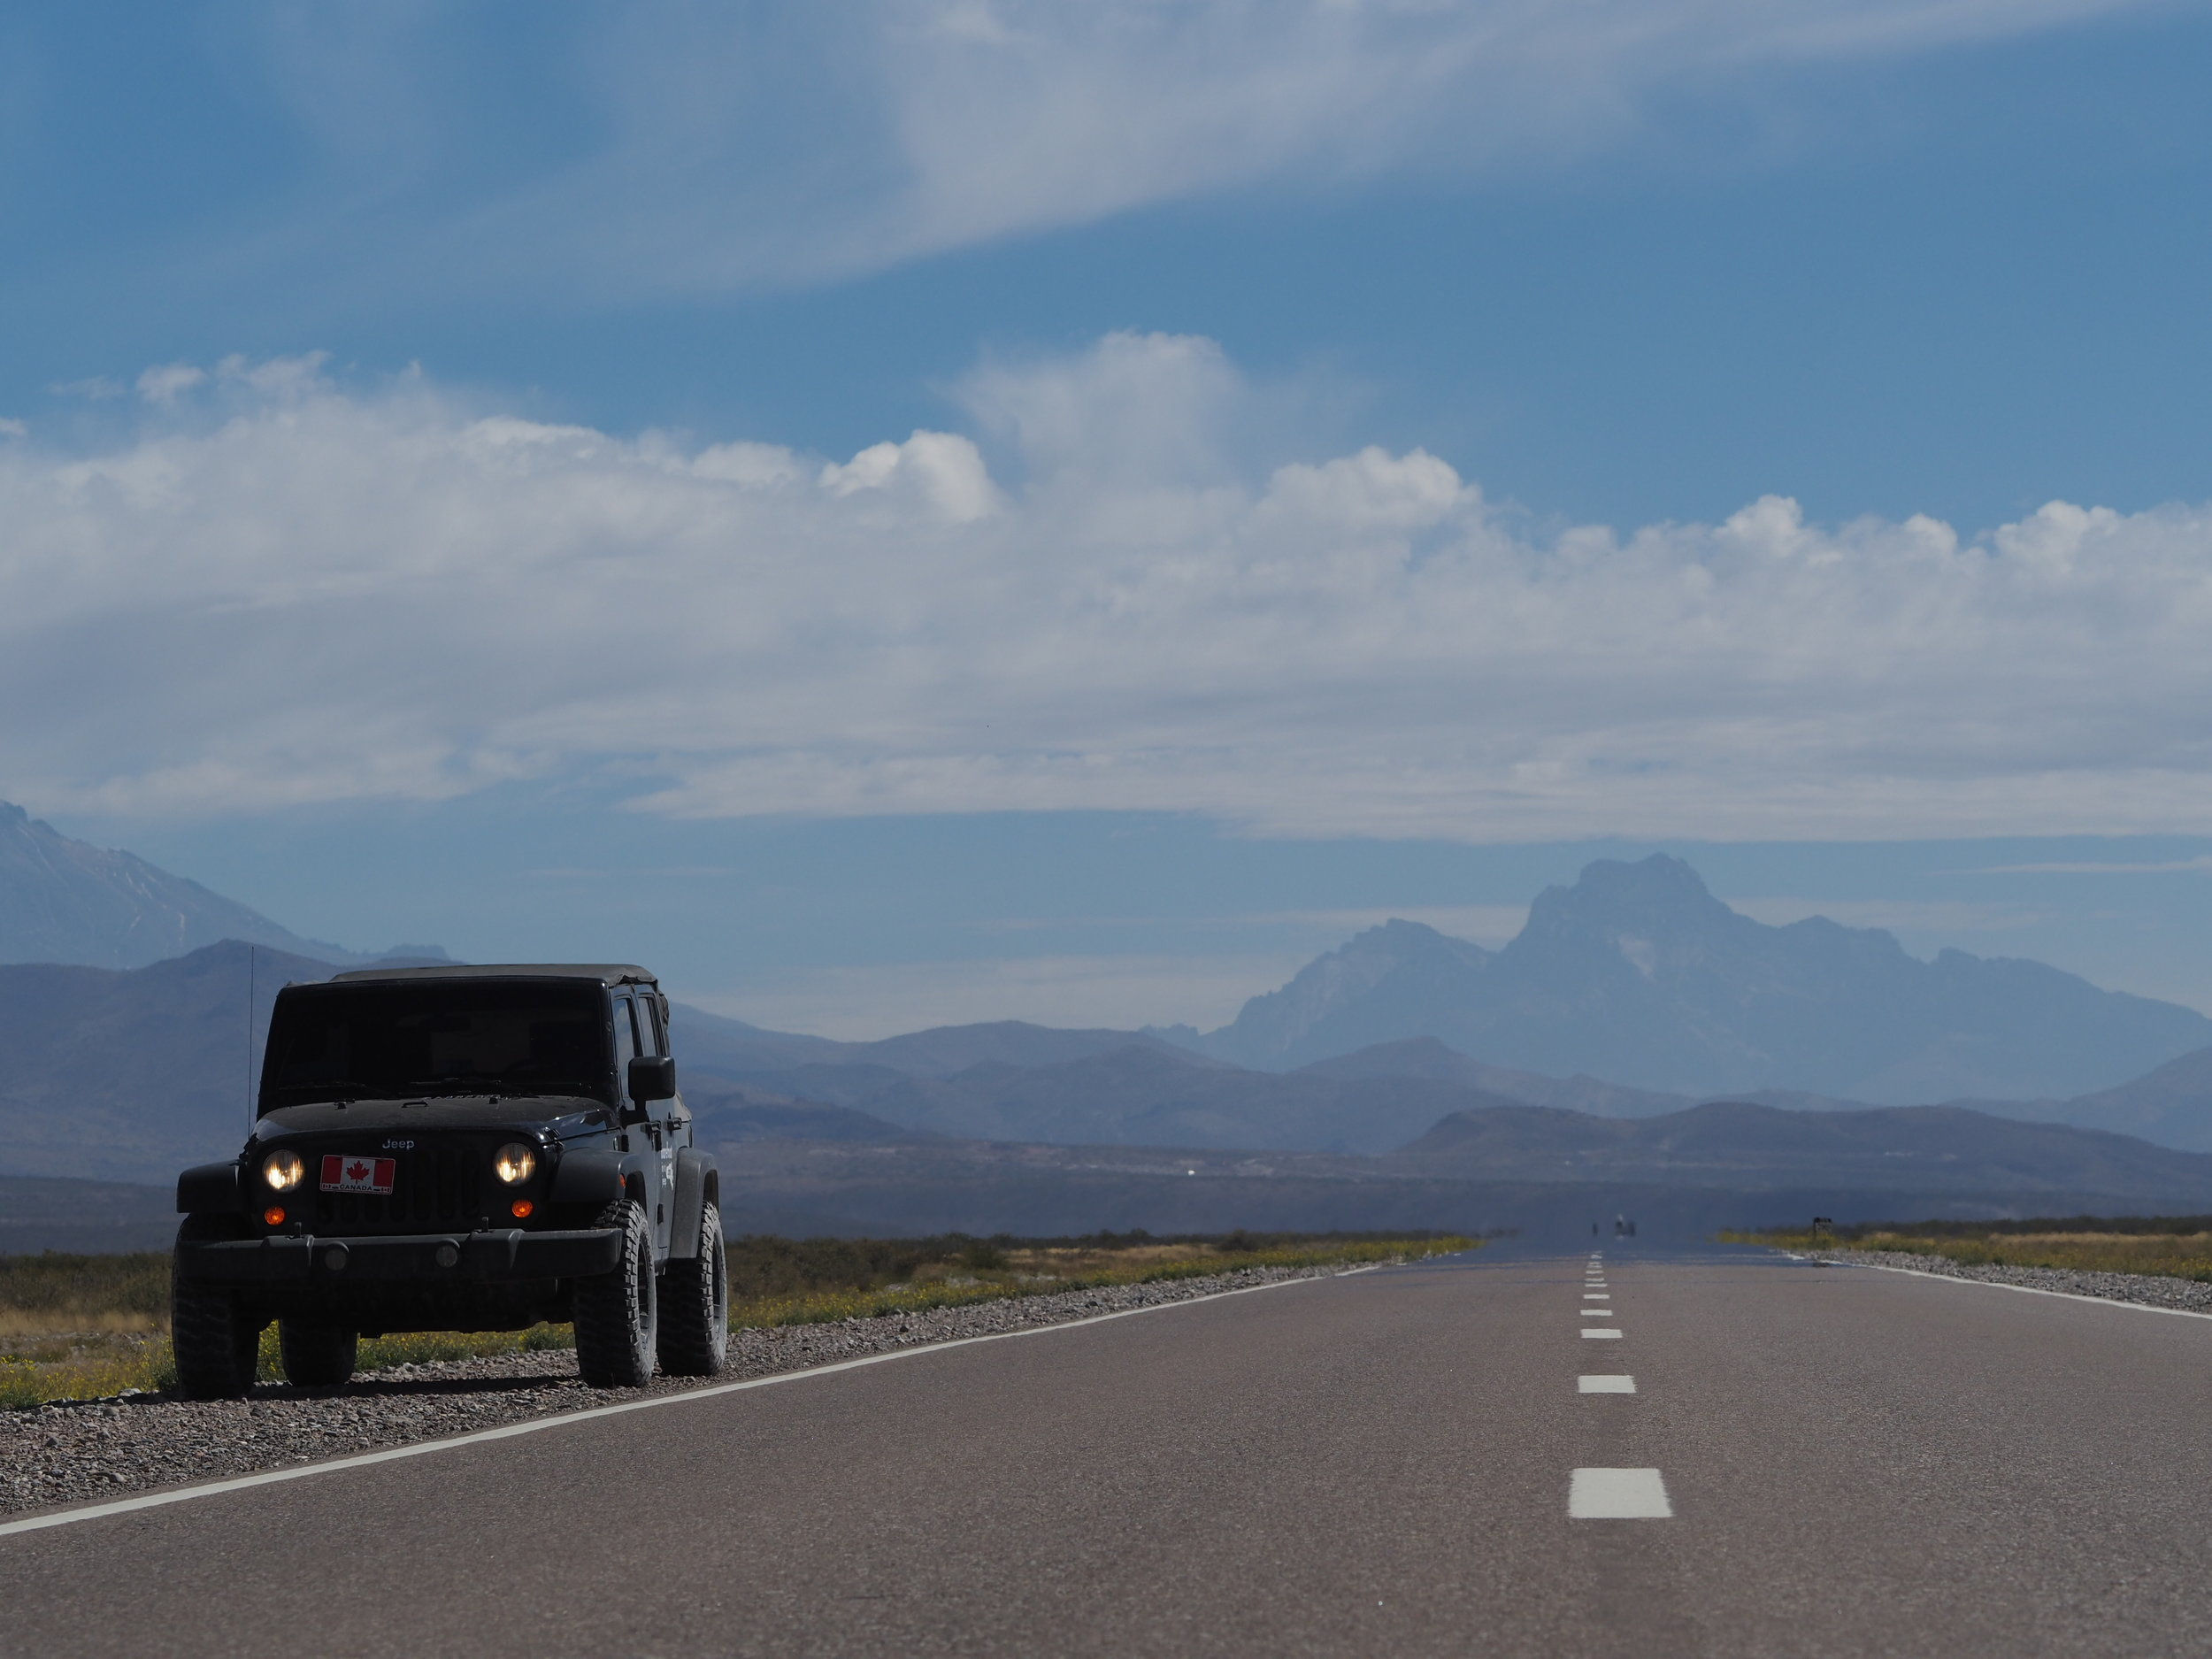 The Wrangler on Ruta 40 in Argentina. Taken with the 75mm f/1.8